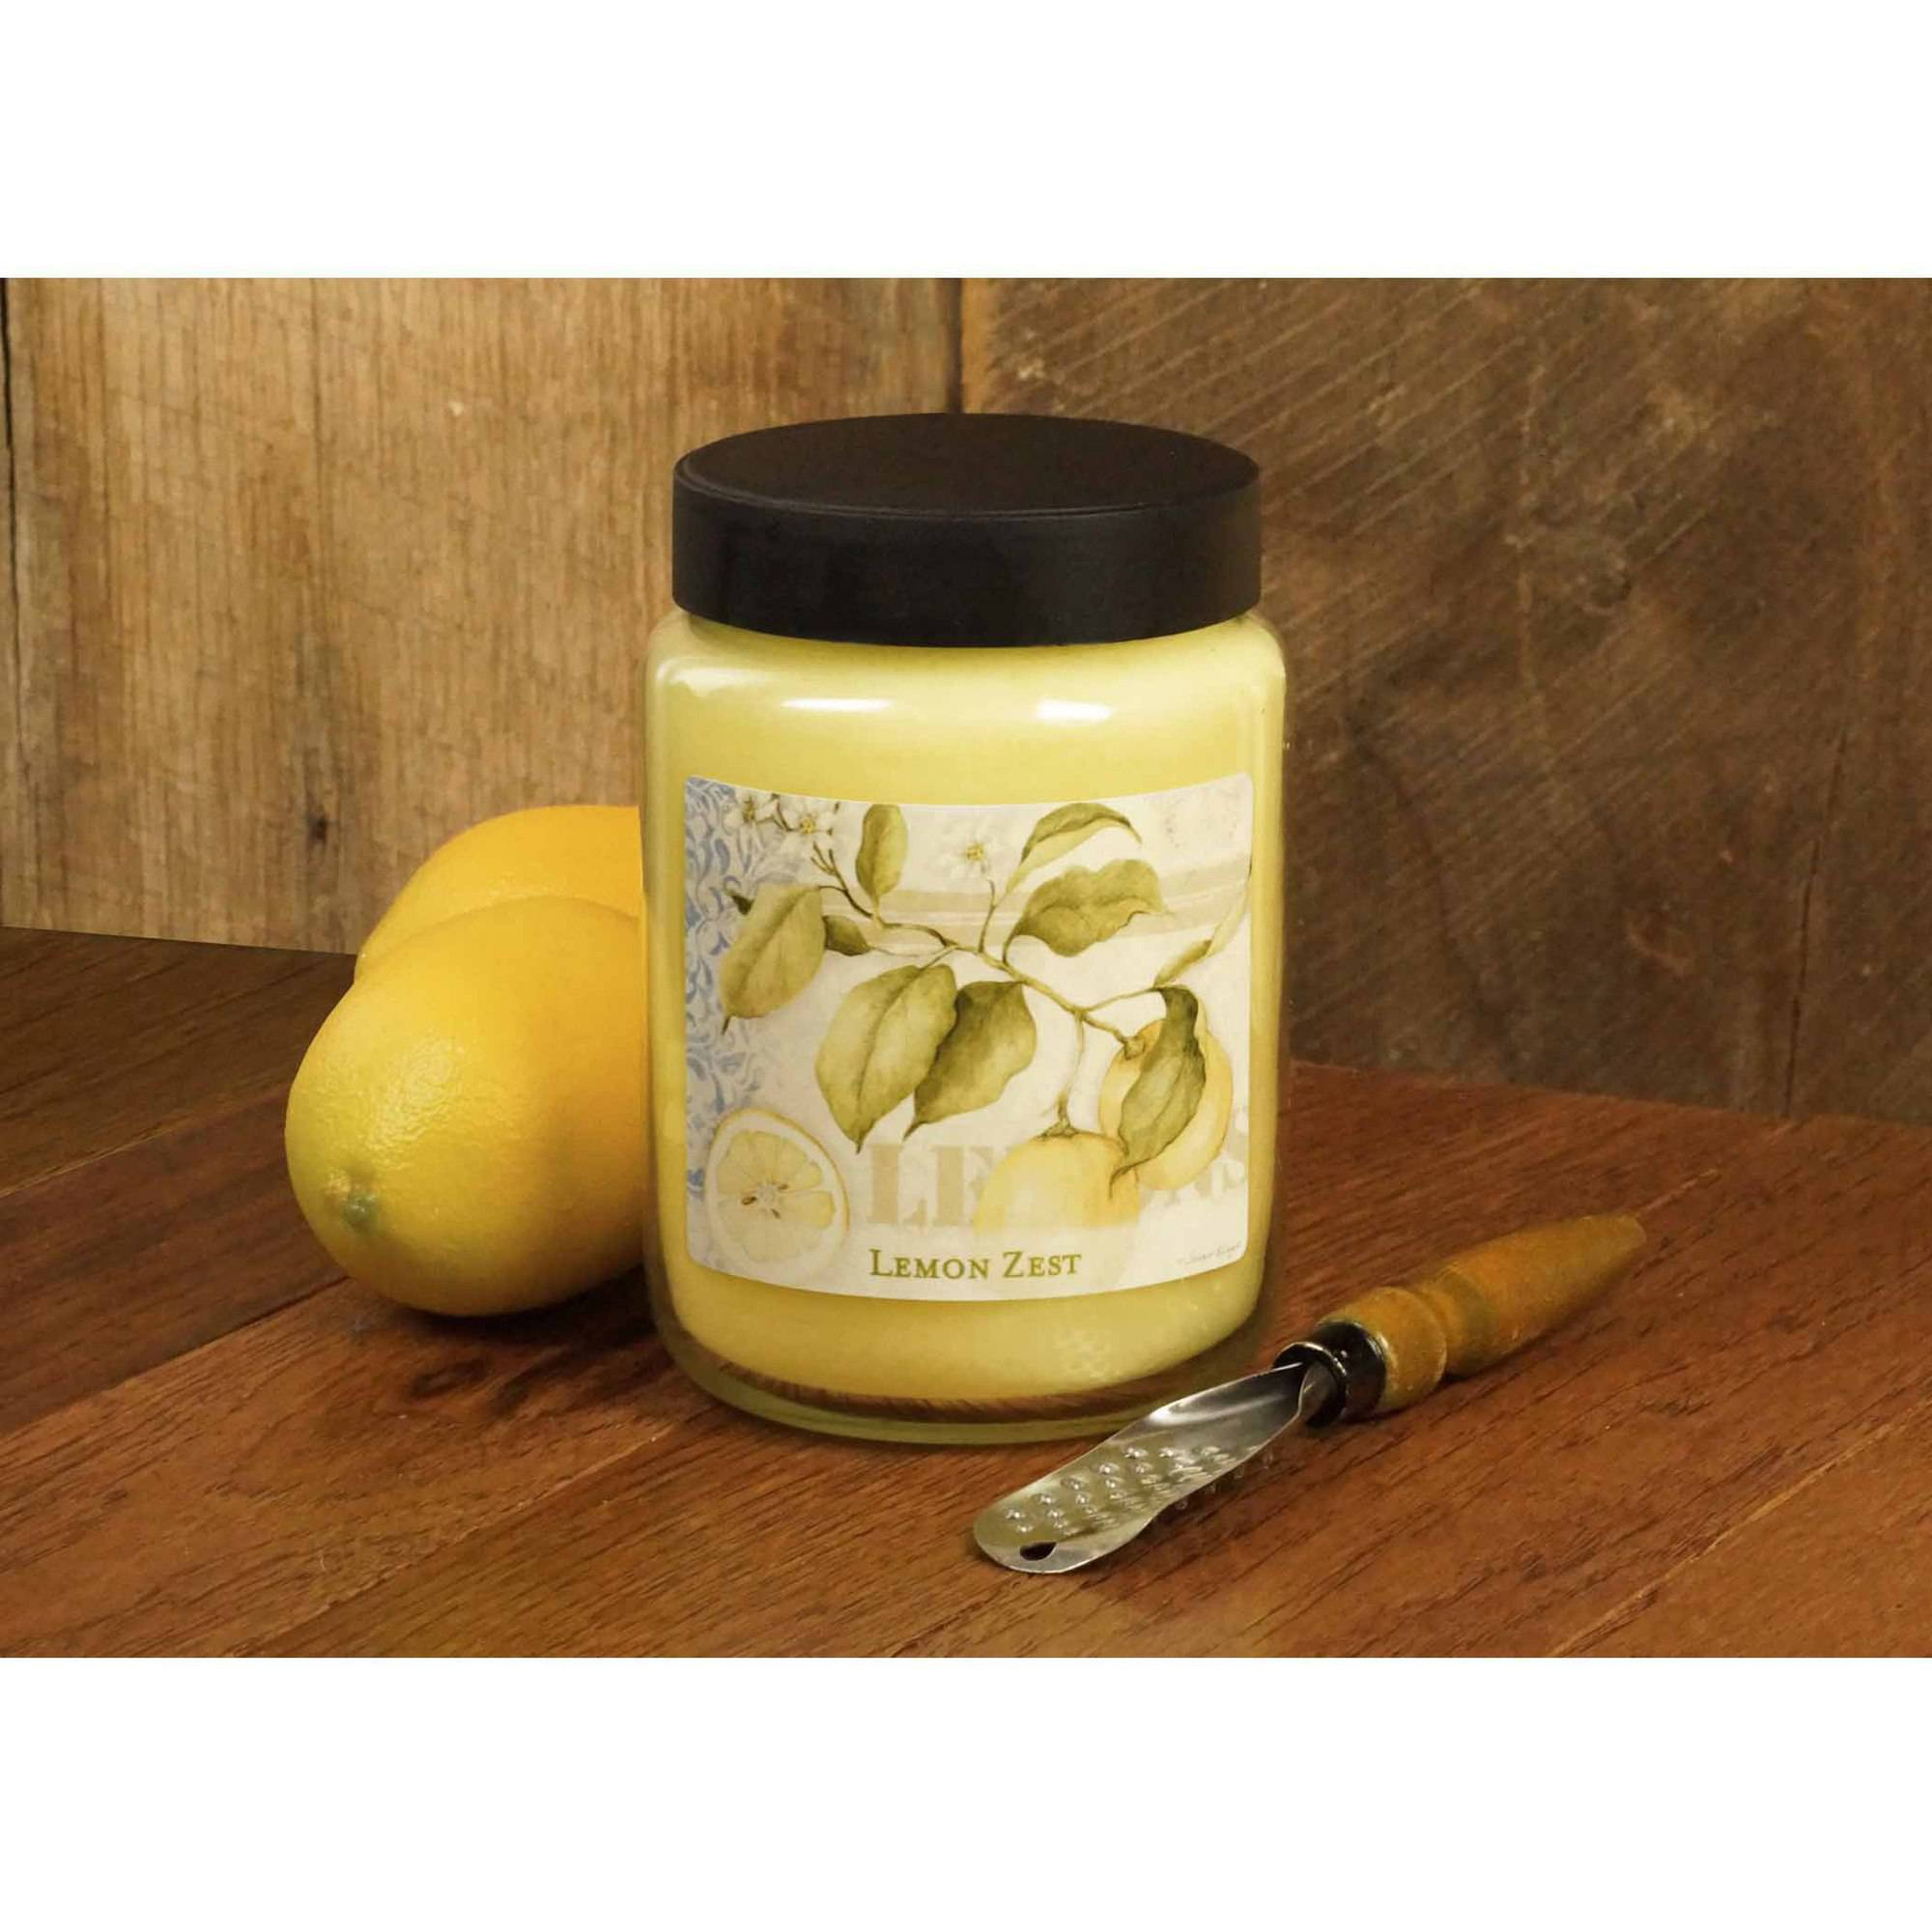 LANG Lemon Zest 26-Ounce Jar Candle, Scented with a Nice Blend of Lemon Zest, Vanilla and Sugar